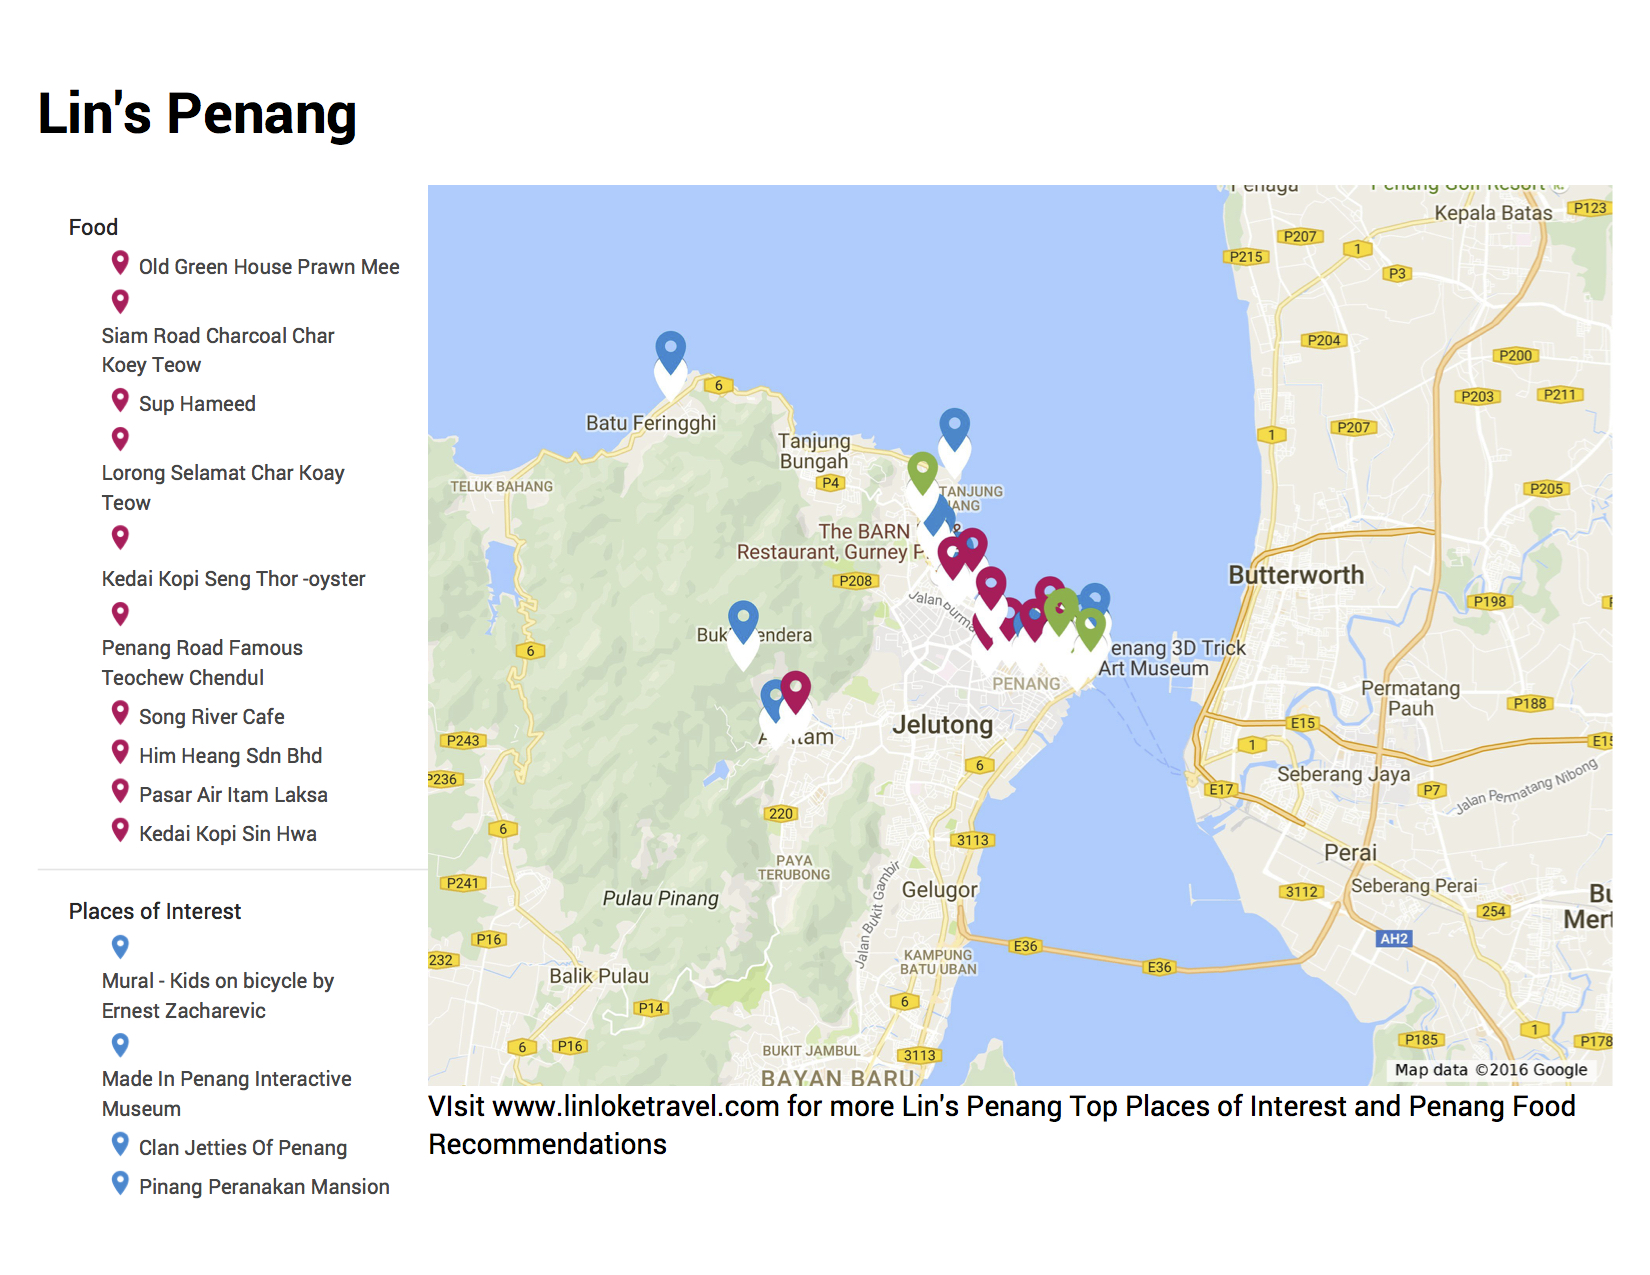 Scroll to the bottom for the link to access my Google My Maps for my Penang Recommendations